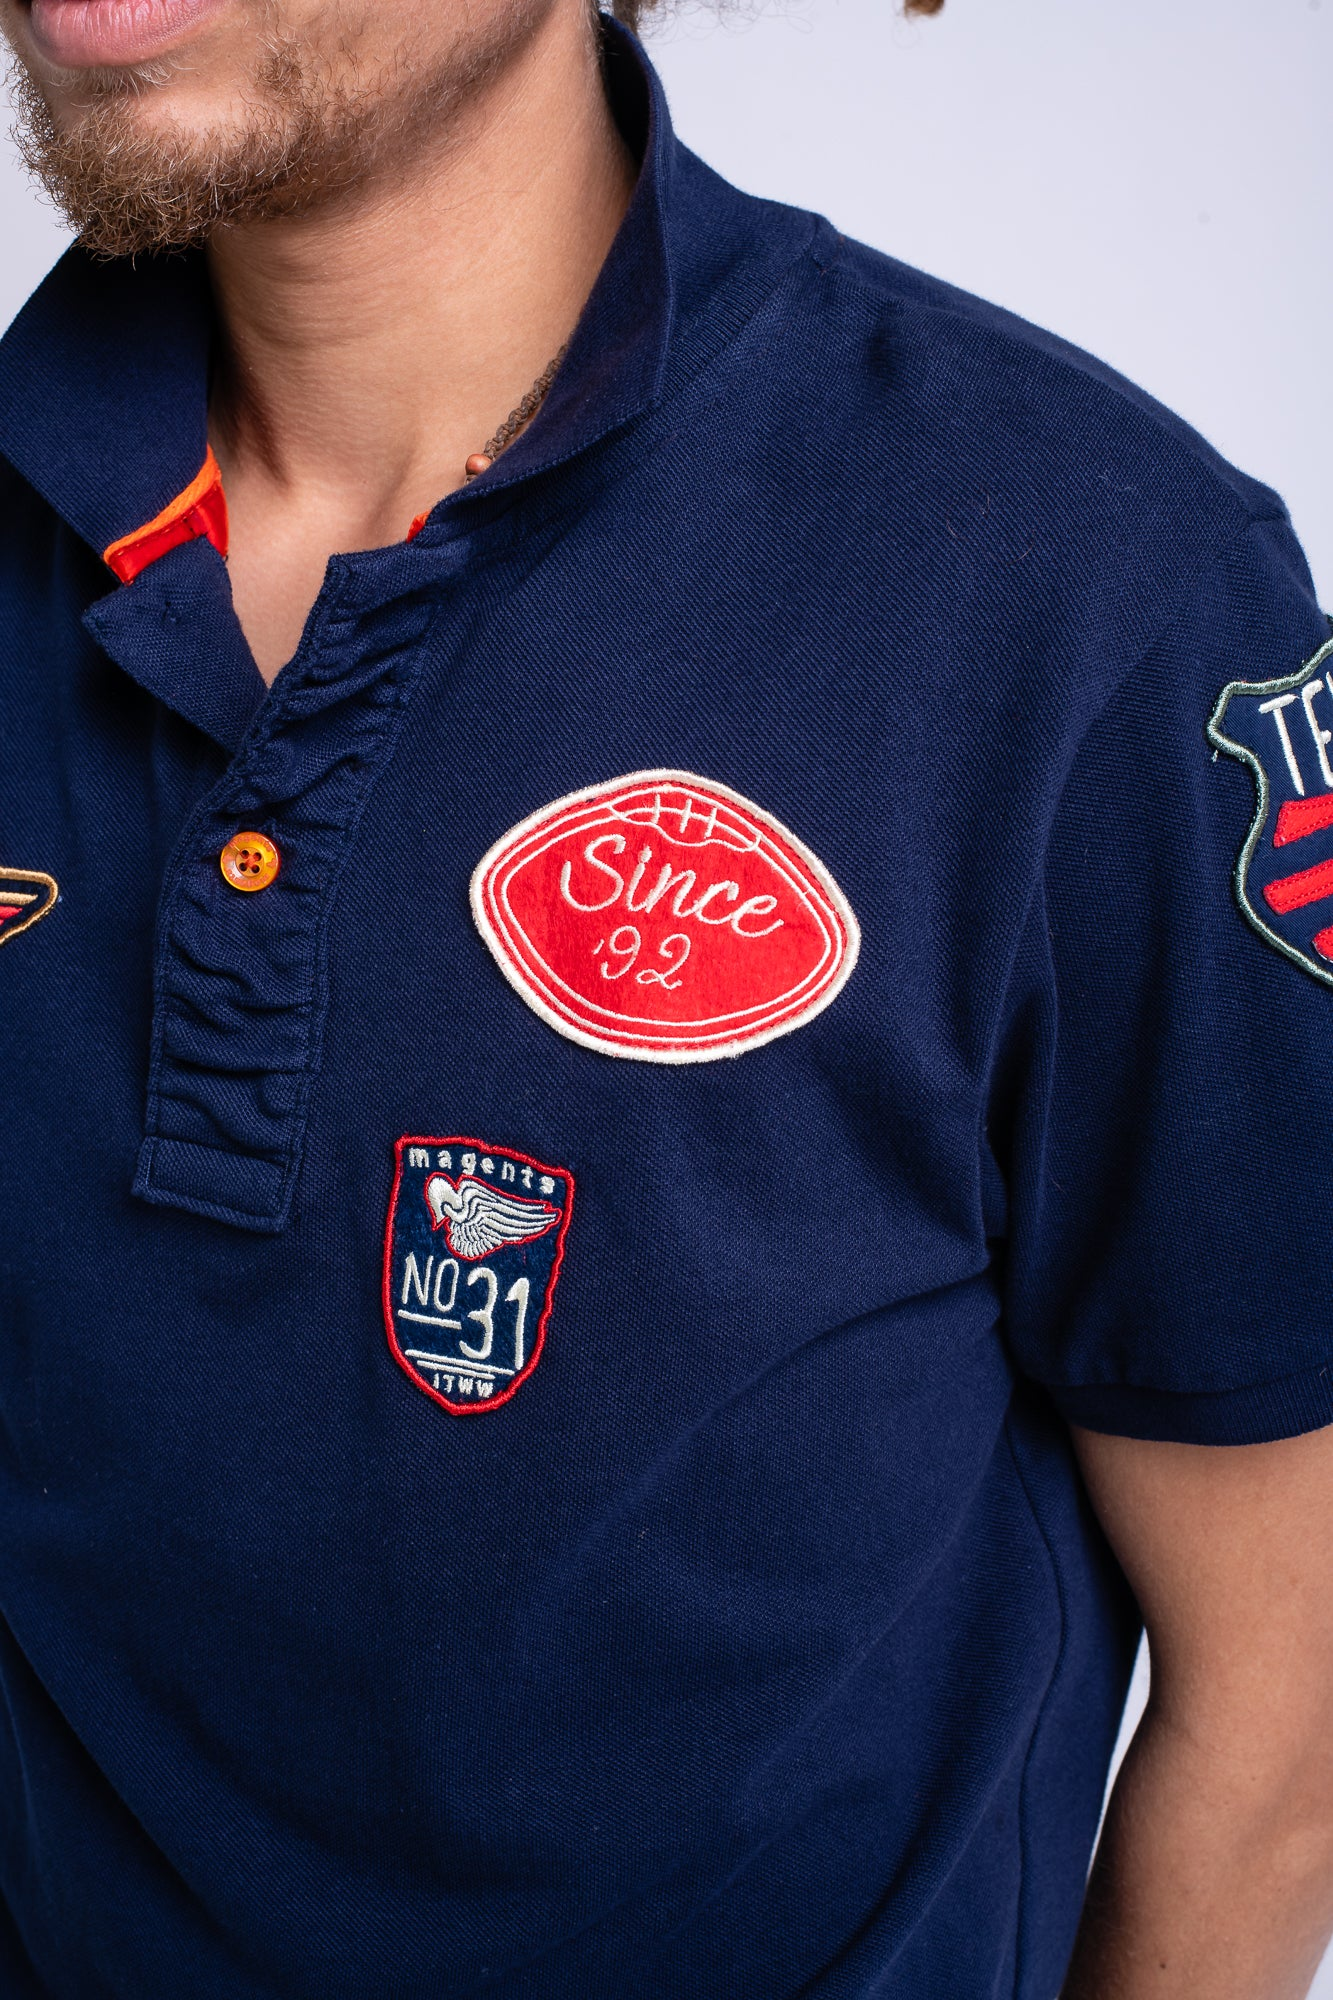 MAGENTS BADGES POLO SHIRT - NAVY